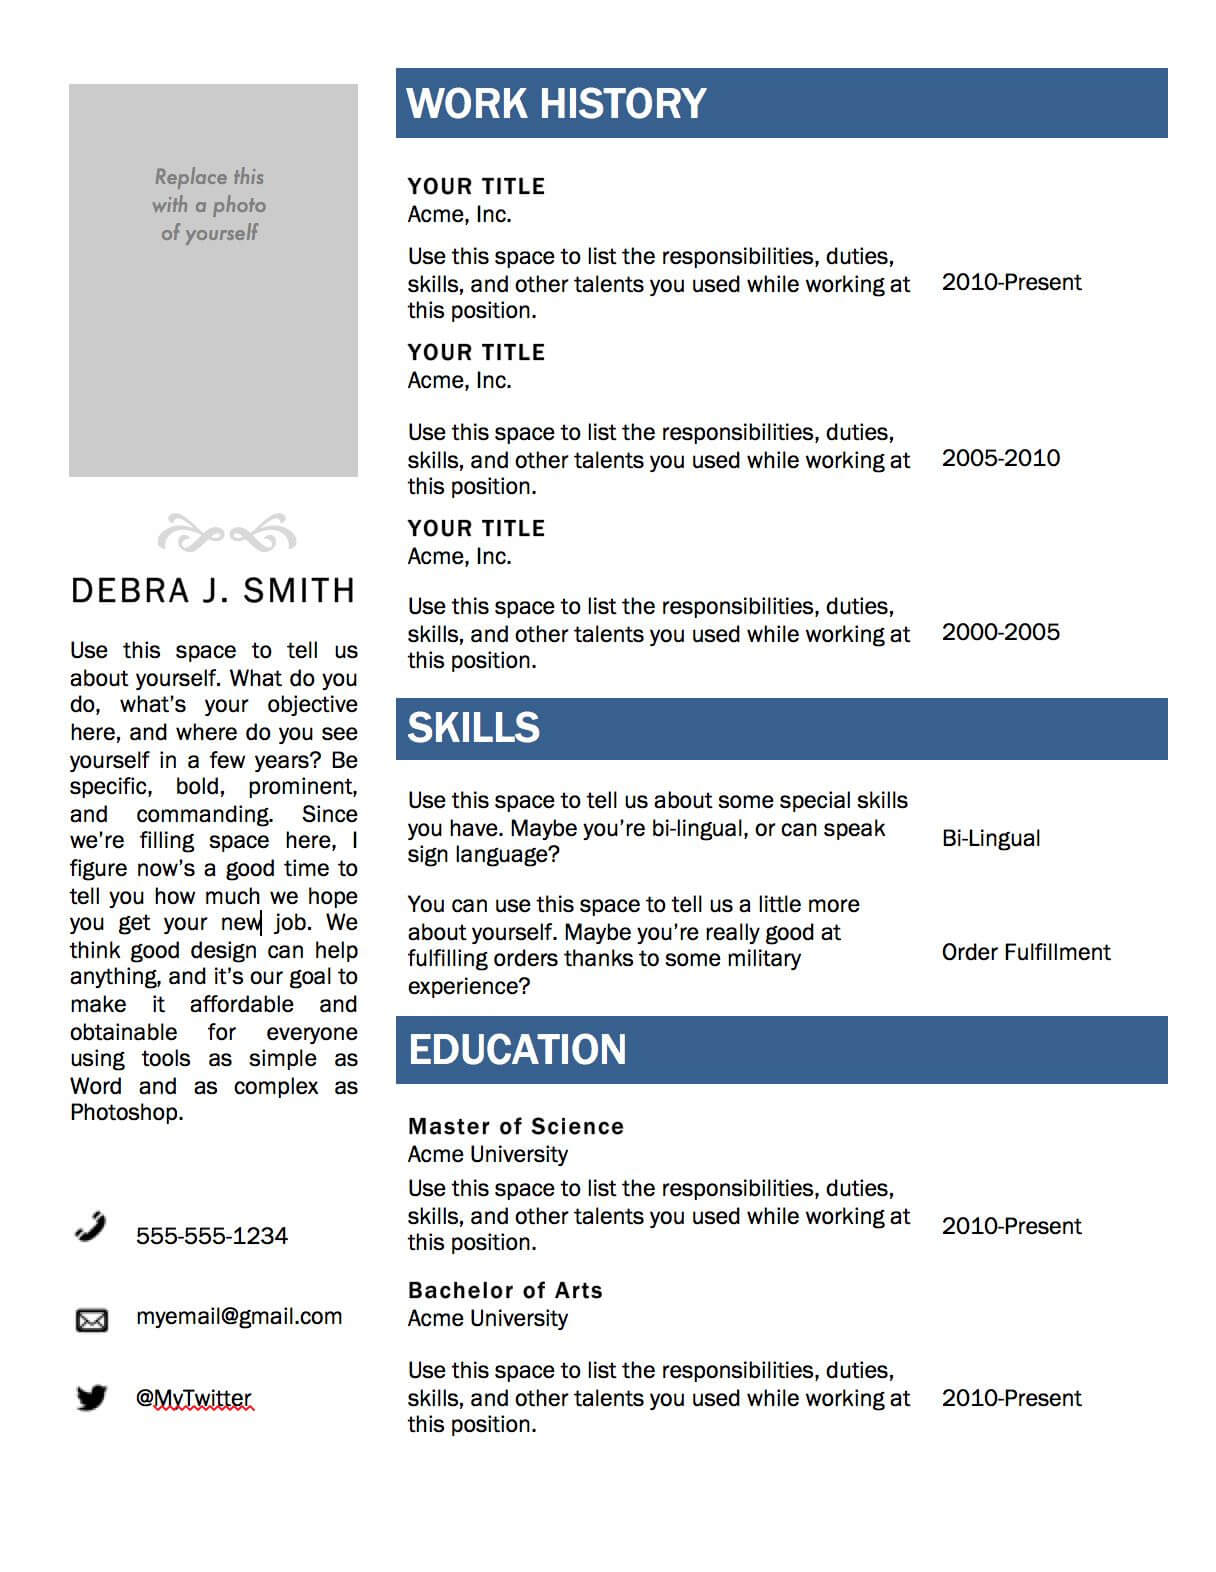 Resume Format Microsoft Word 2010 - Colona.rsd7 Intended For Resume Templates Microsoft Word 2010